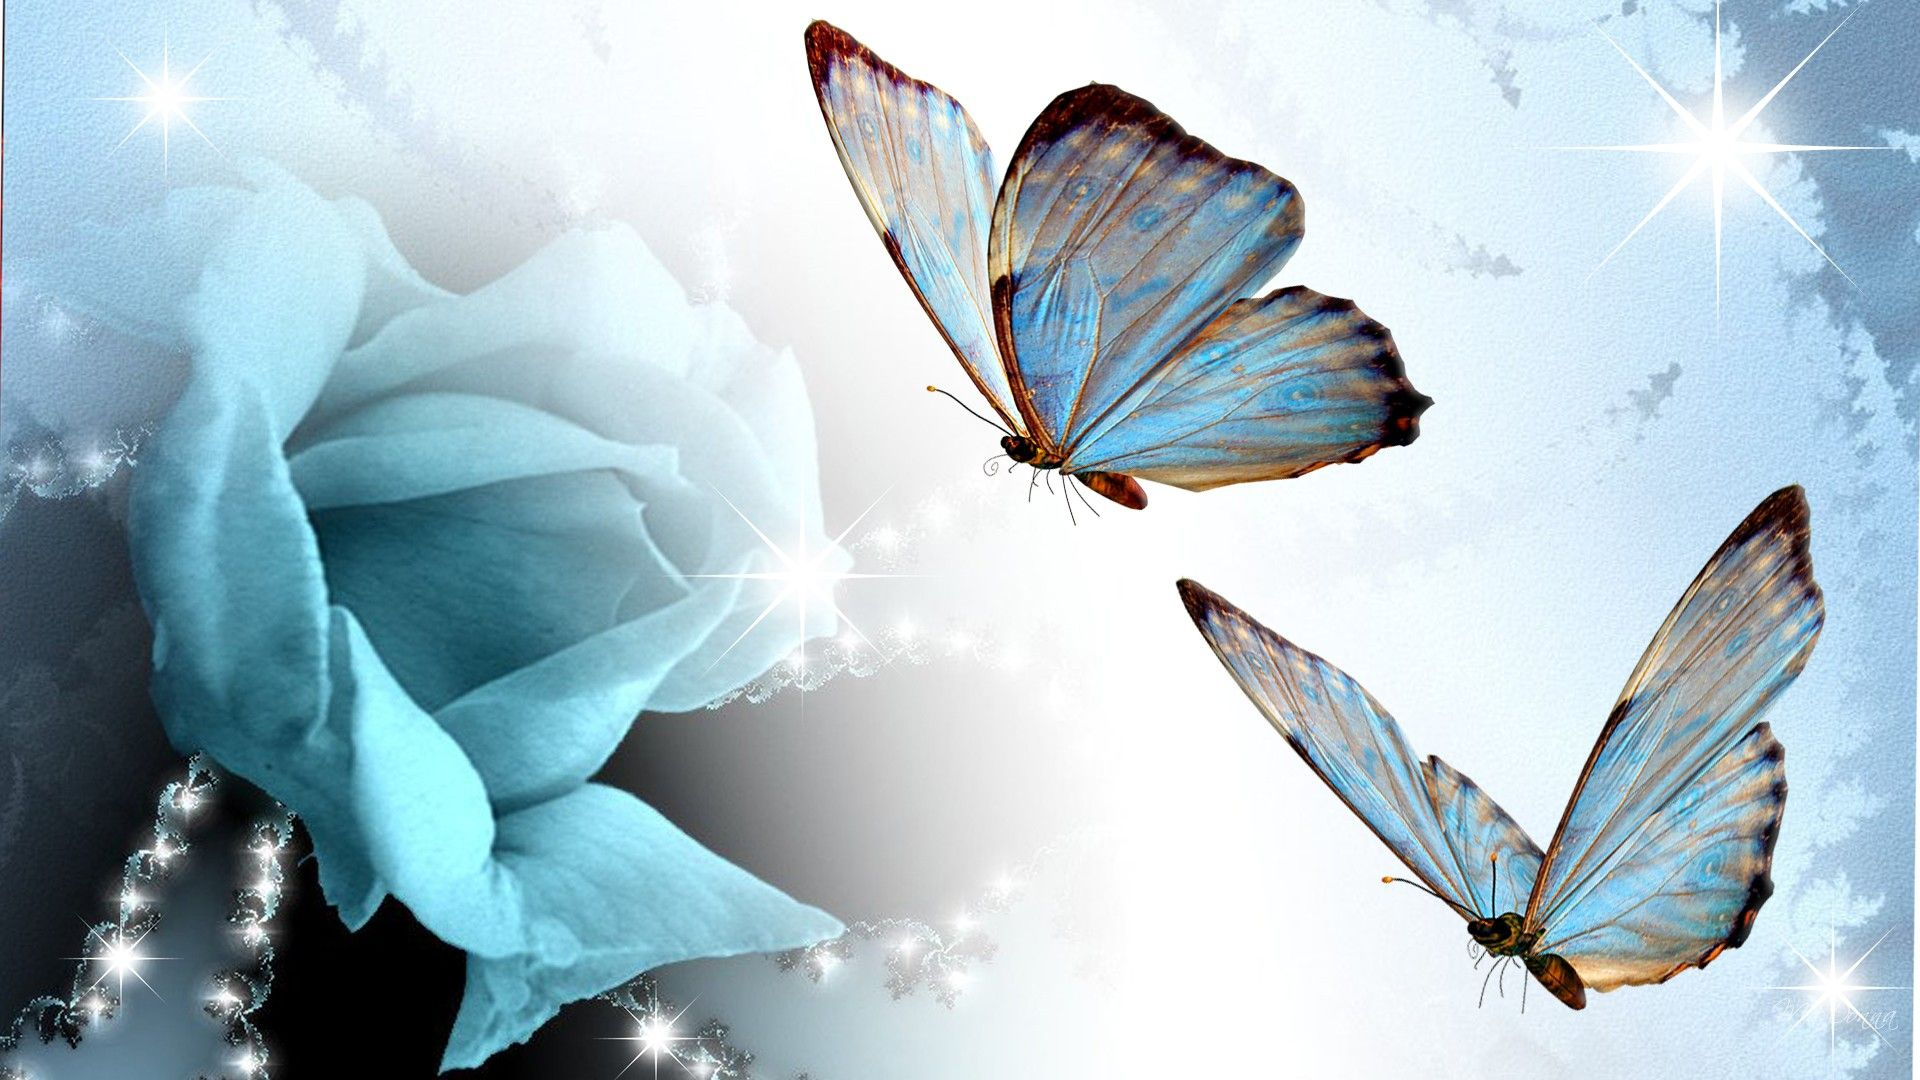 butterfly images Bing Images Butterfly wallpaper, Abstract